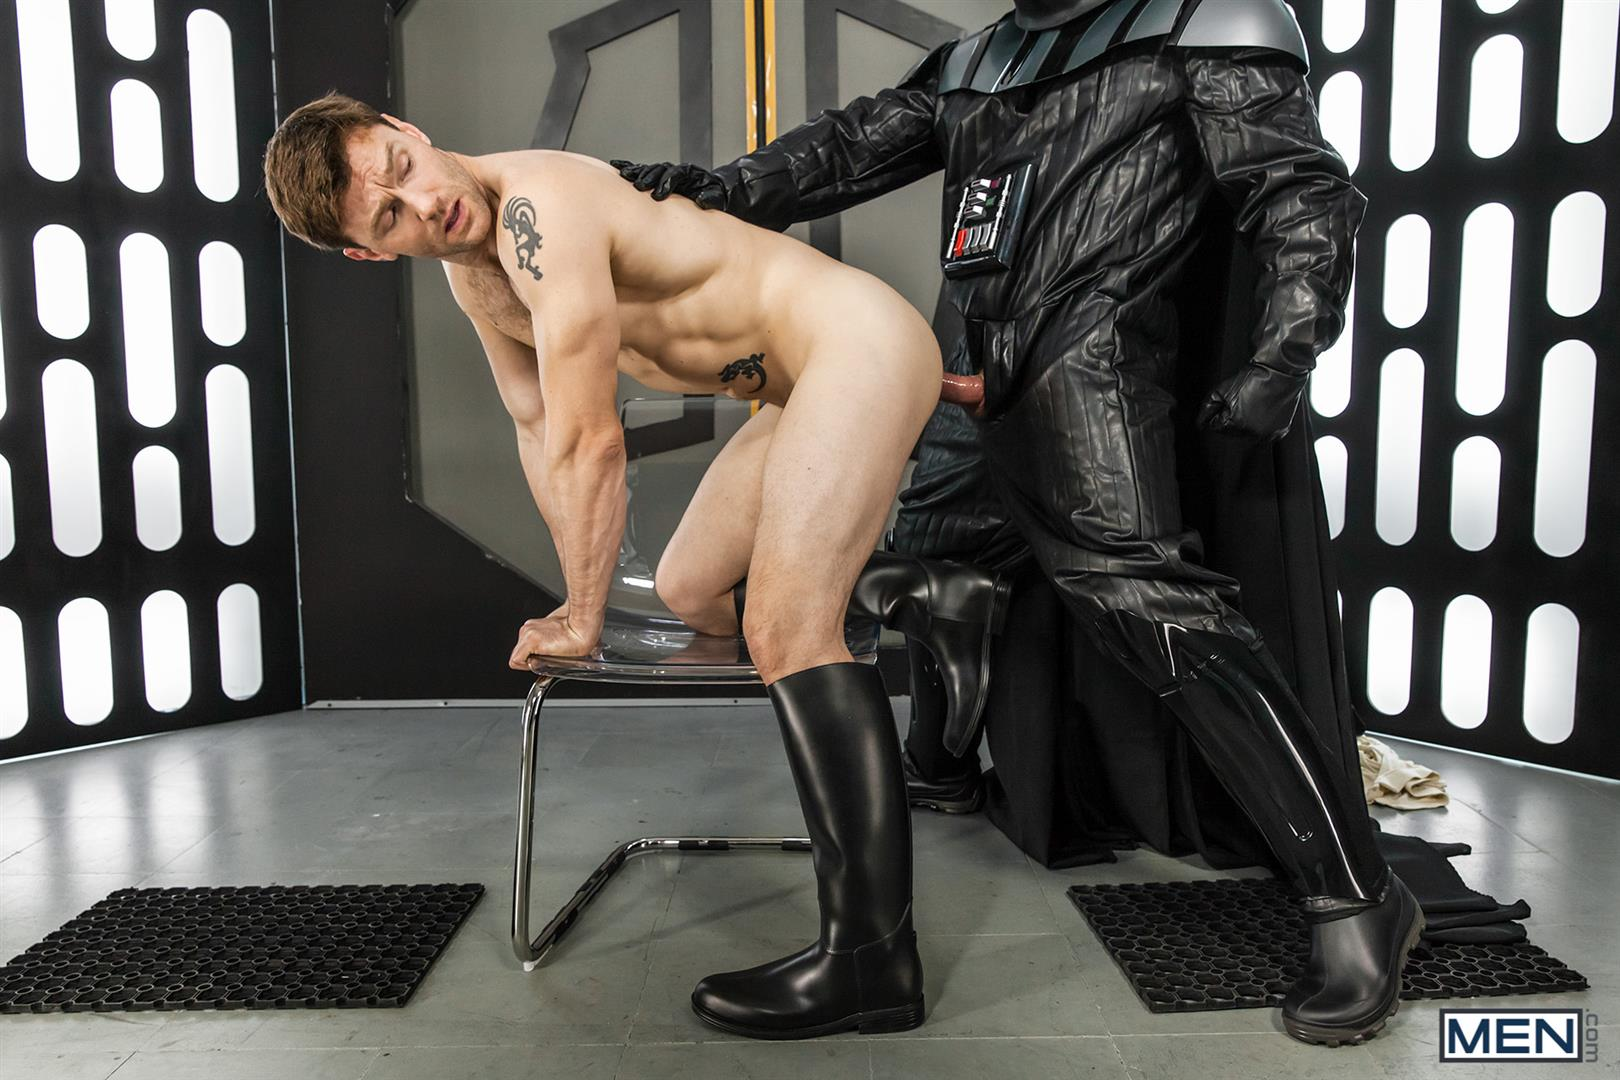 Men Dennis West Gay Star Wars Parody XXX Amateur Gay Porn 41 Who Knew that Darth Vader Likes To Fuck Man Ass?